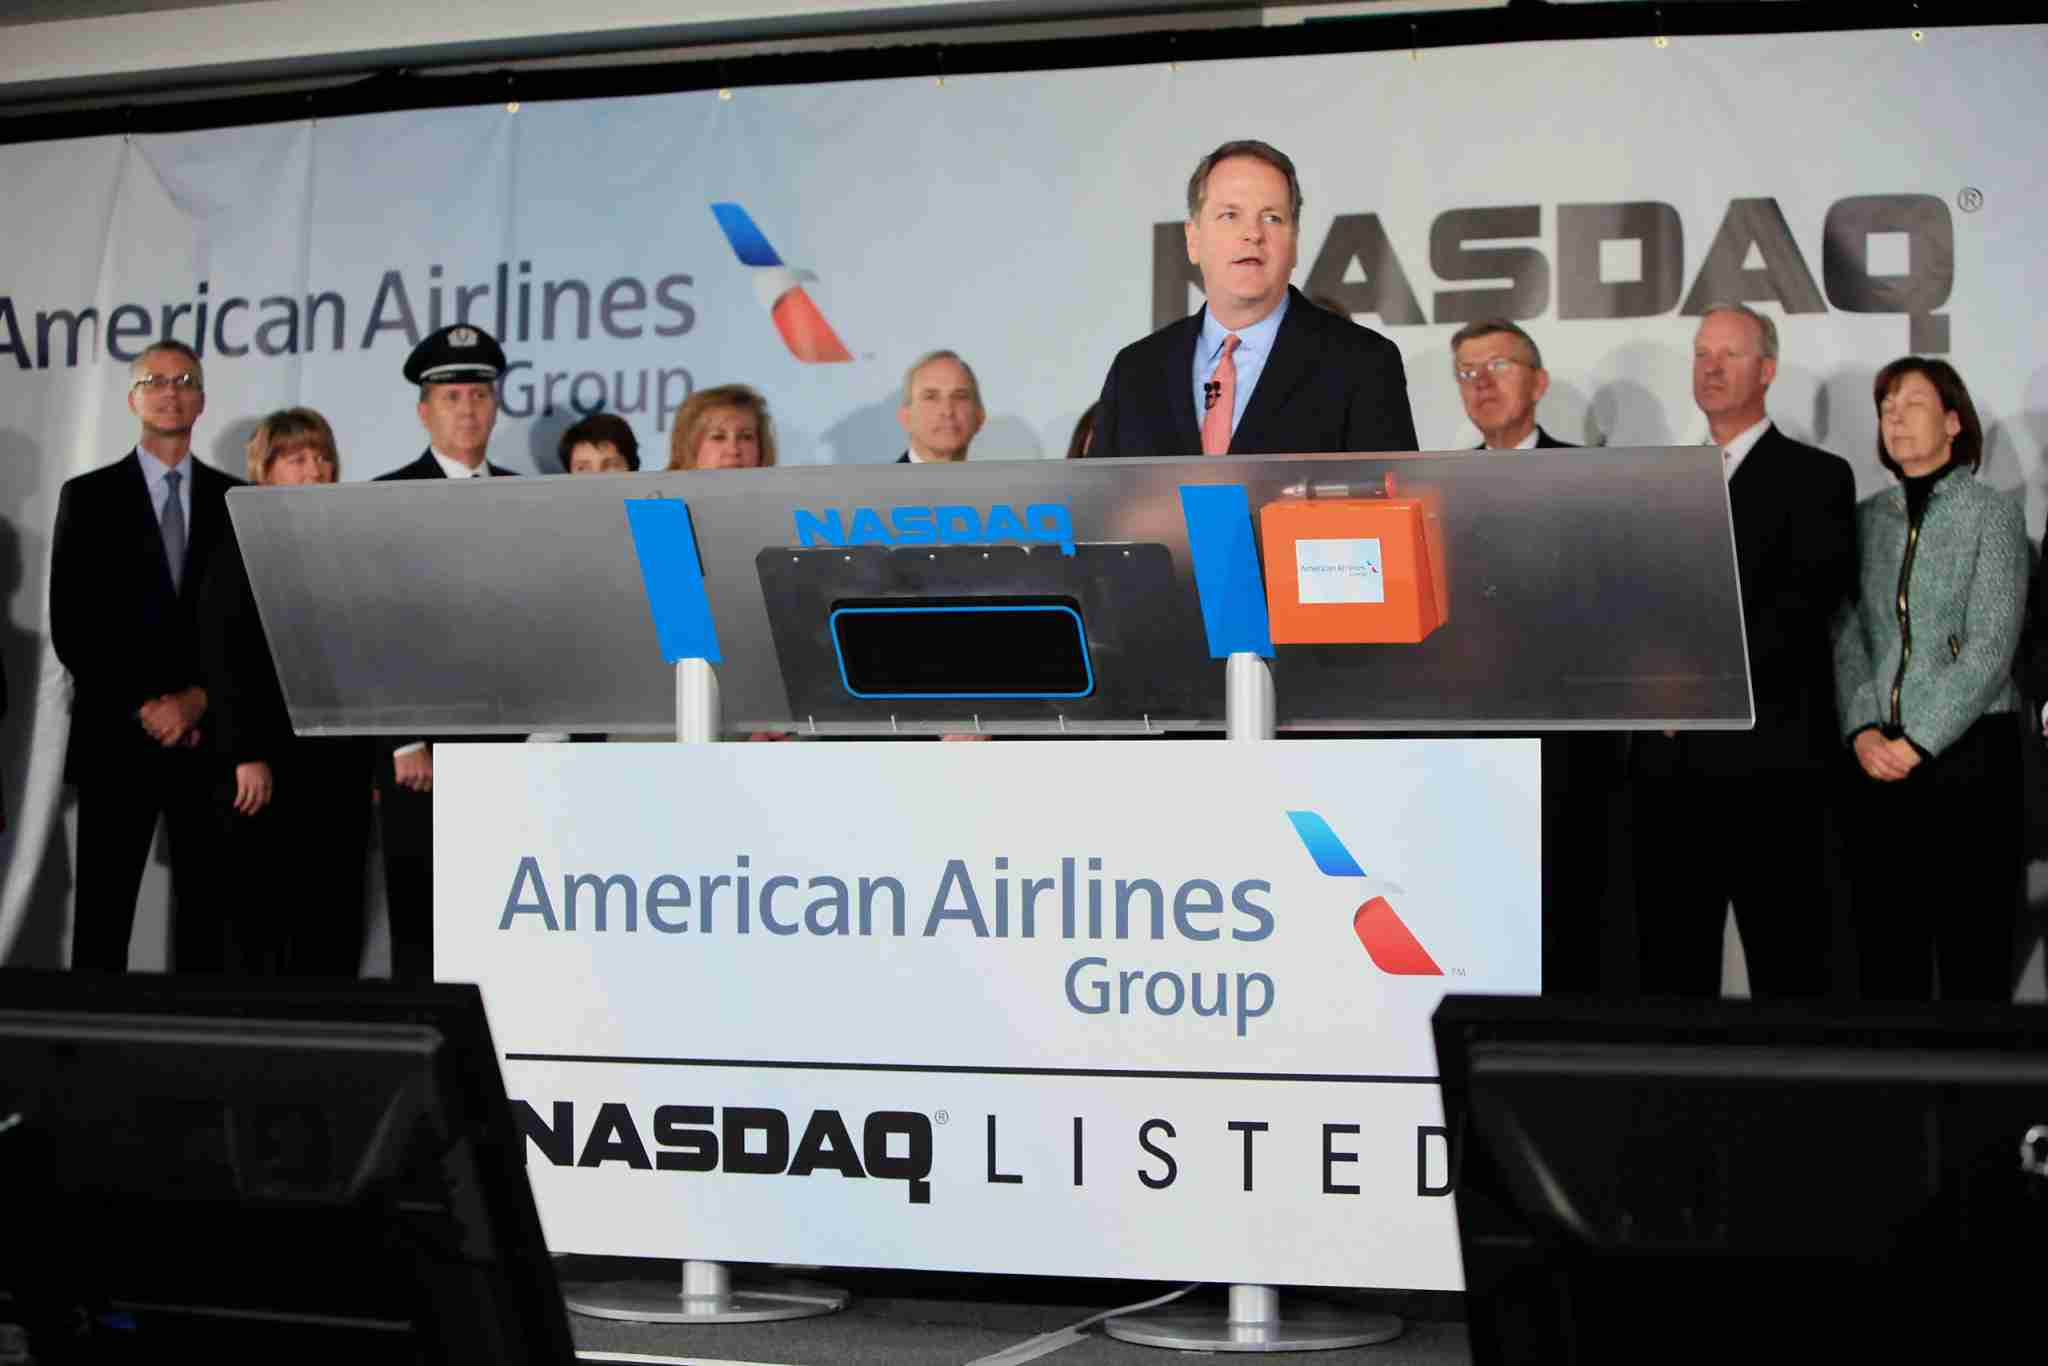 "Douglas ""Doug"" Parker, chief executive officer of the newly formed American Airlines Group Inc., speaks before remotely ring the opening bell of the Nasdaq MarketSite at American Airlines headquarters in Fort Worth, Texas, U.S., on Monday, Dec. 9, 2013. American Airlines Group Inc., formed today when AMR Corp. and US Airways Group Inc. combined, is poised to rise on confidence that the worlds largest carrier can avoid the pitfalls that dragged down other mergers. Photographer: Ben Torres/Bloomberg via Getty Images"